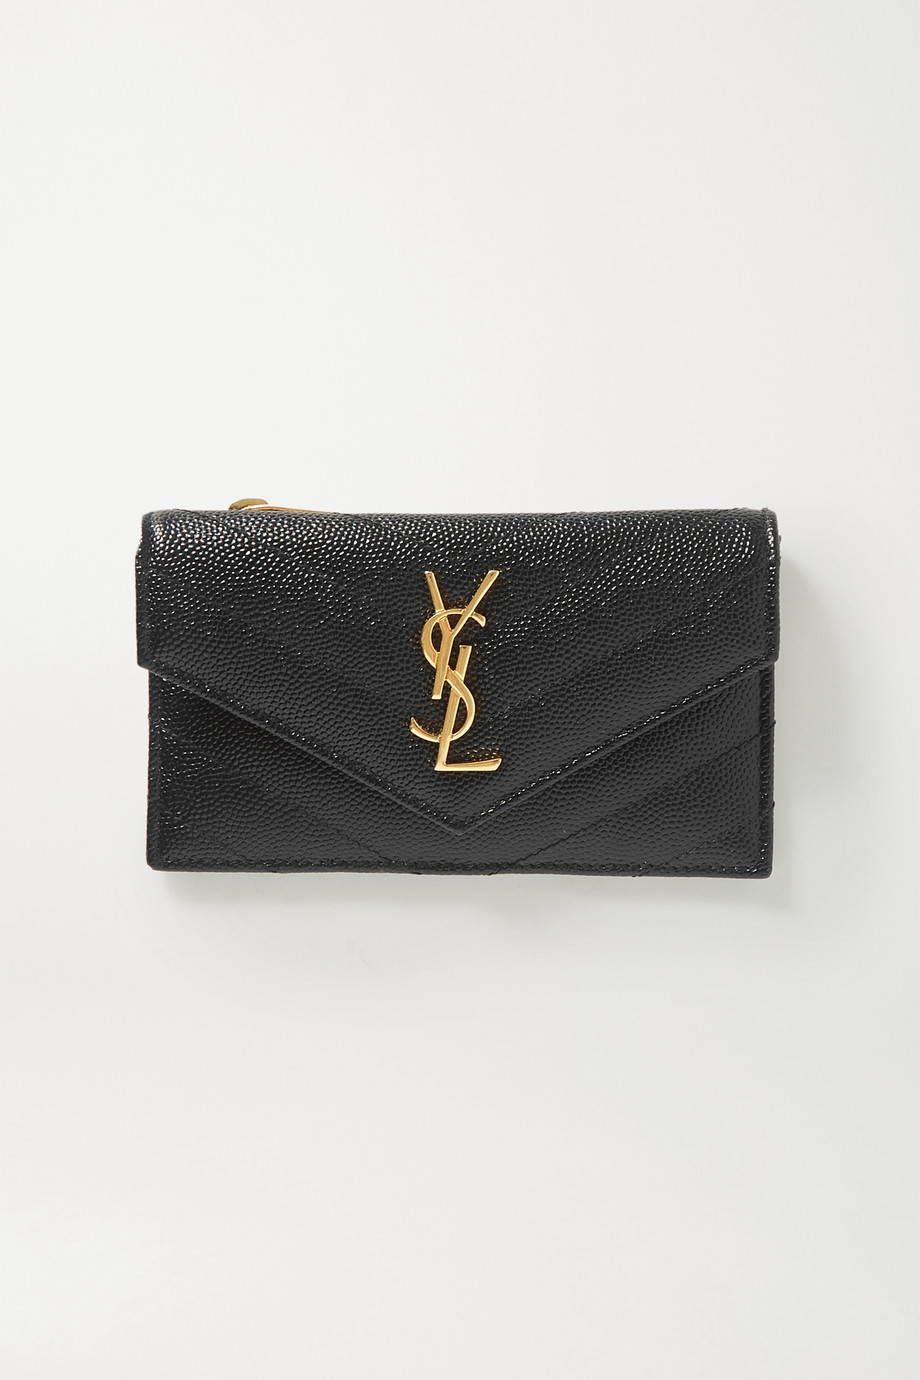 SAINT LAURENT Monogram quilted textured-leather wallet